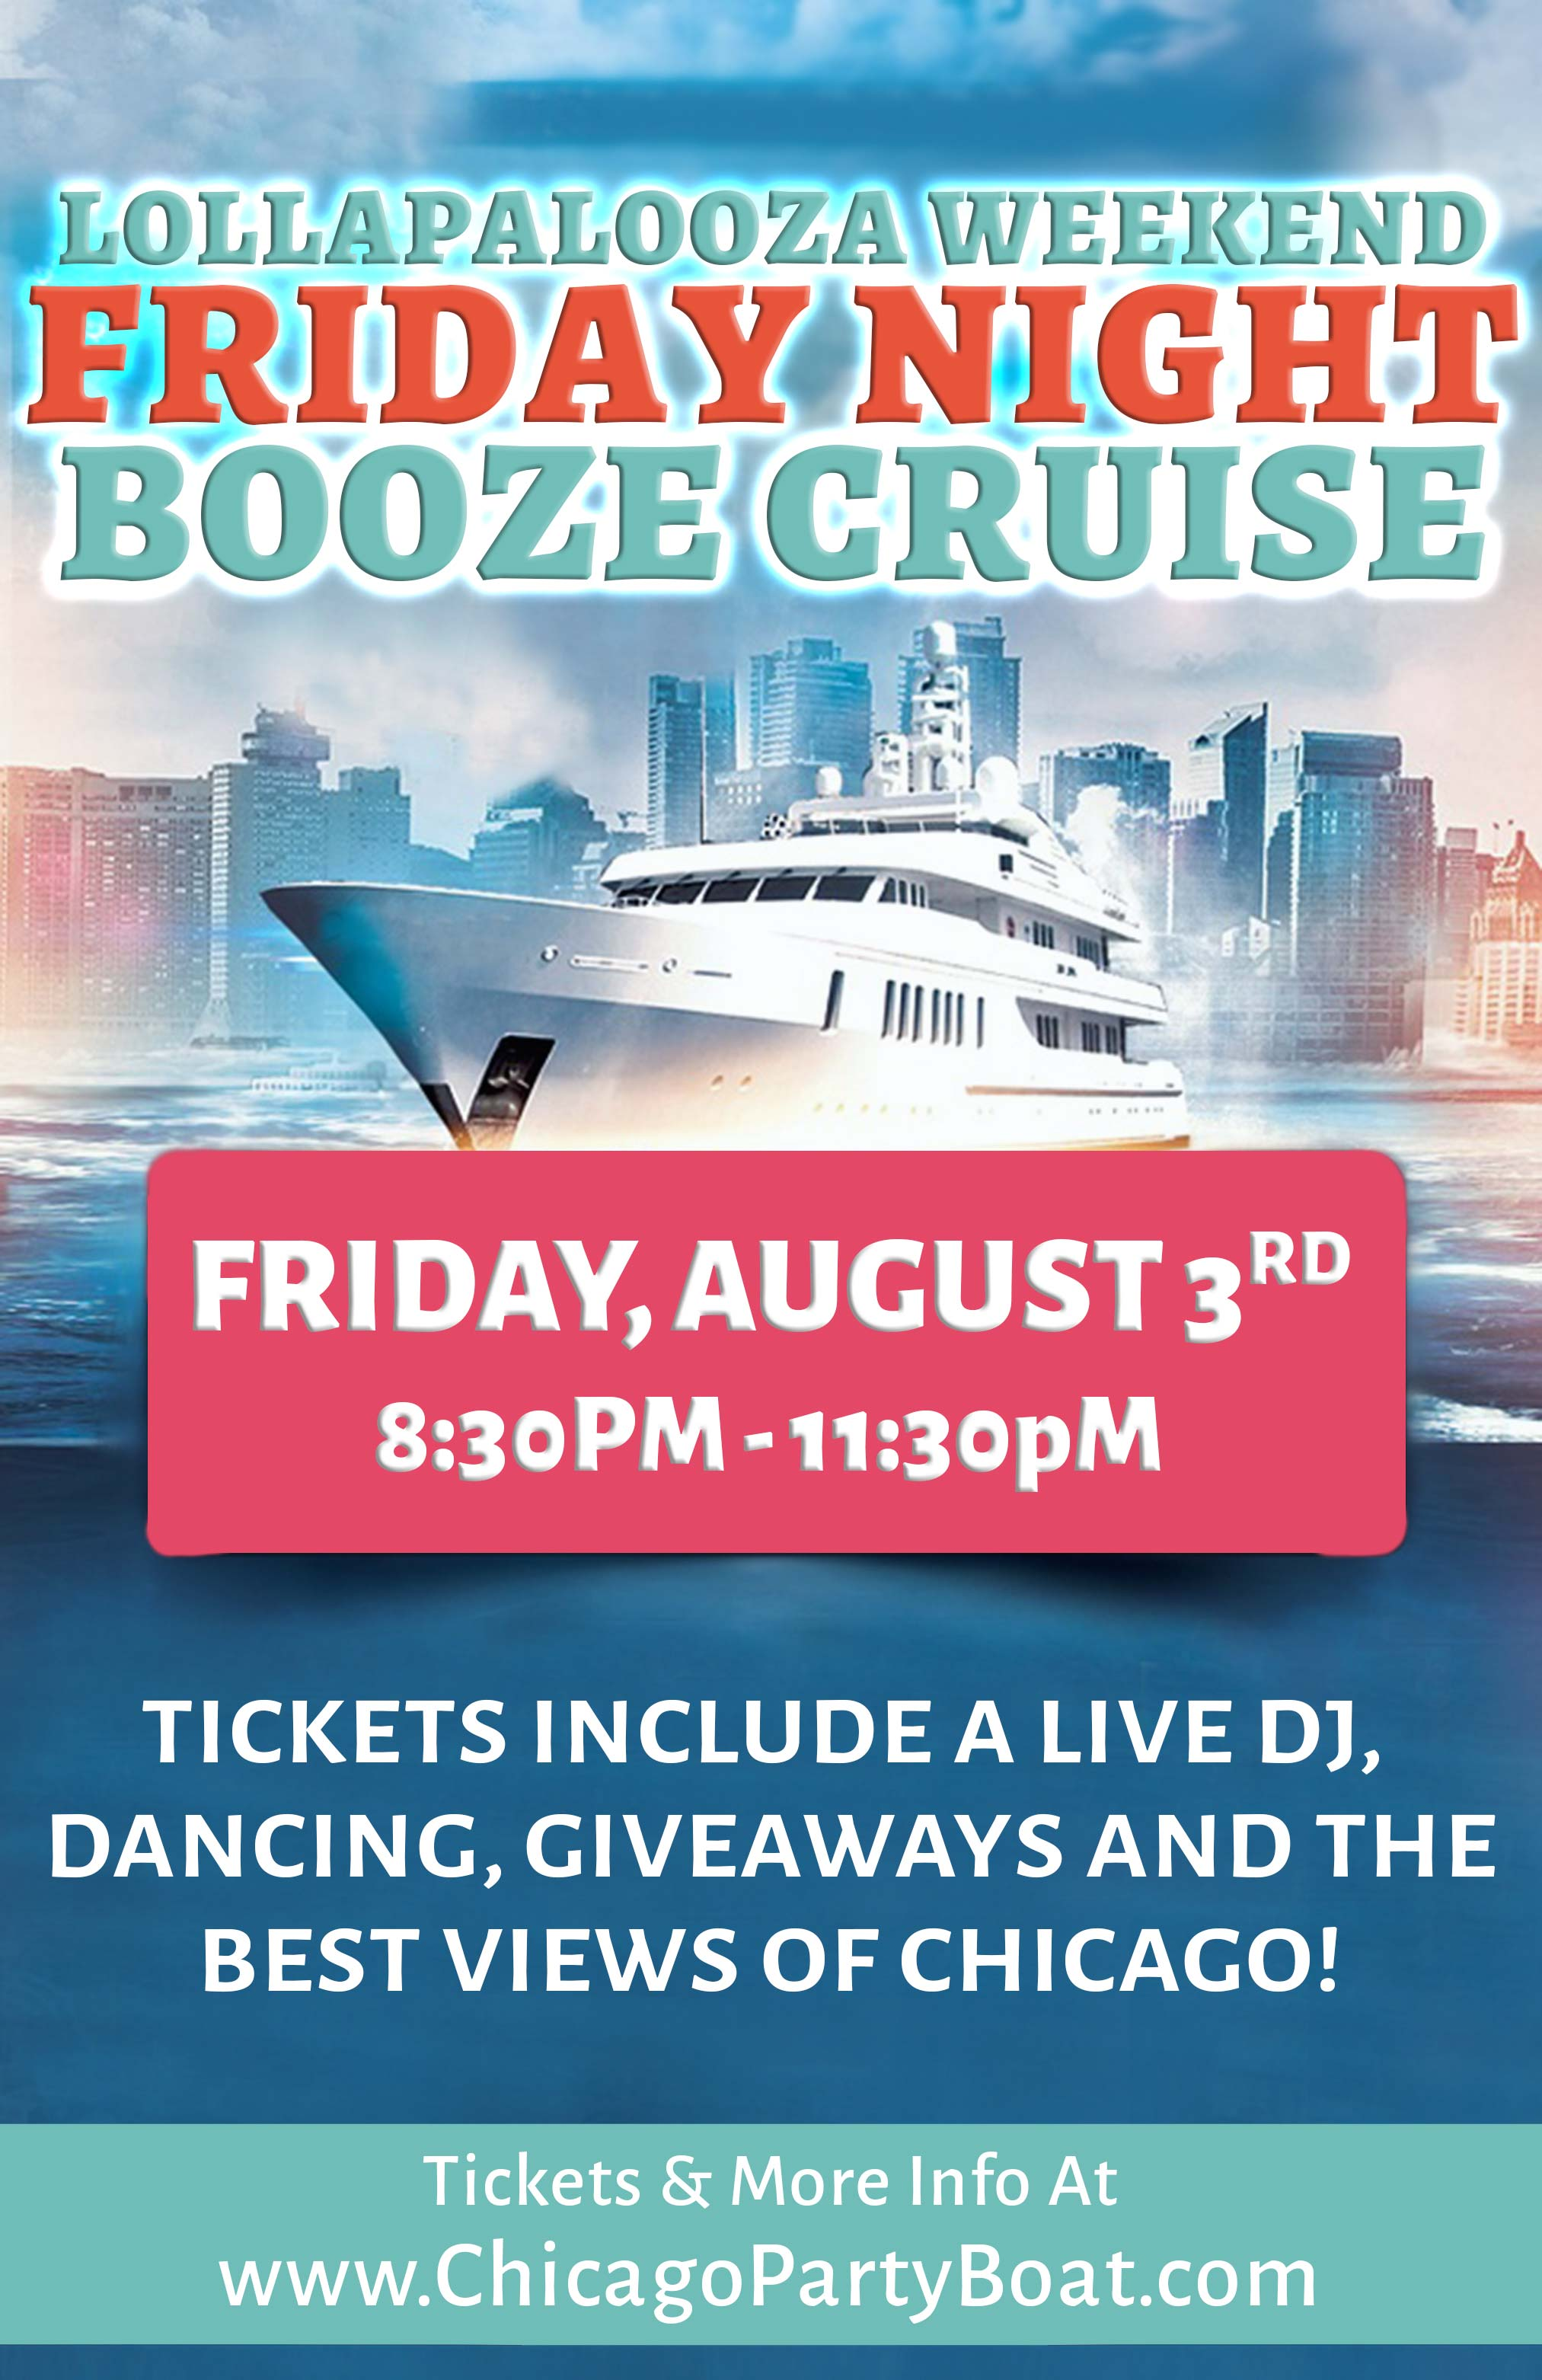 Lollapalooza Weekend Friday Night Booze Cruise Party - Tickets include a Live DJ, Dancing, Giveaways, and the best views of Chicago!